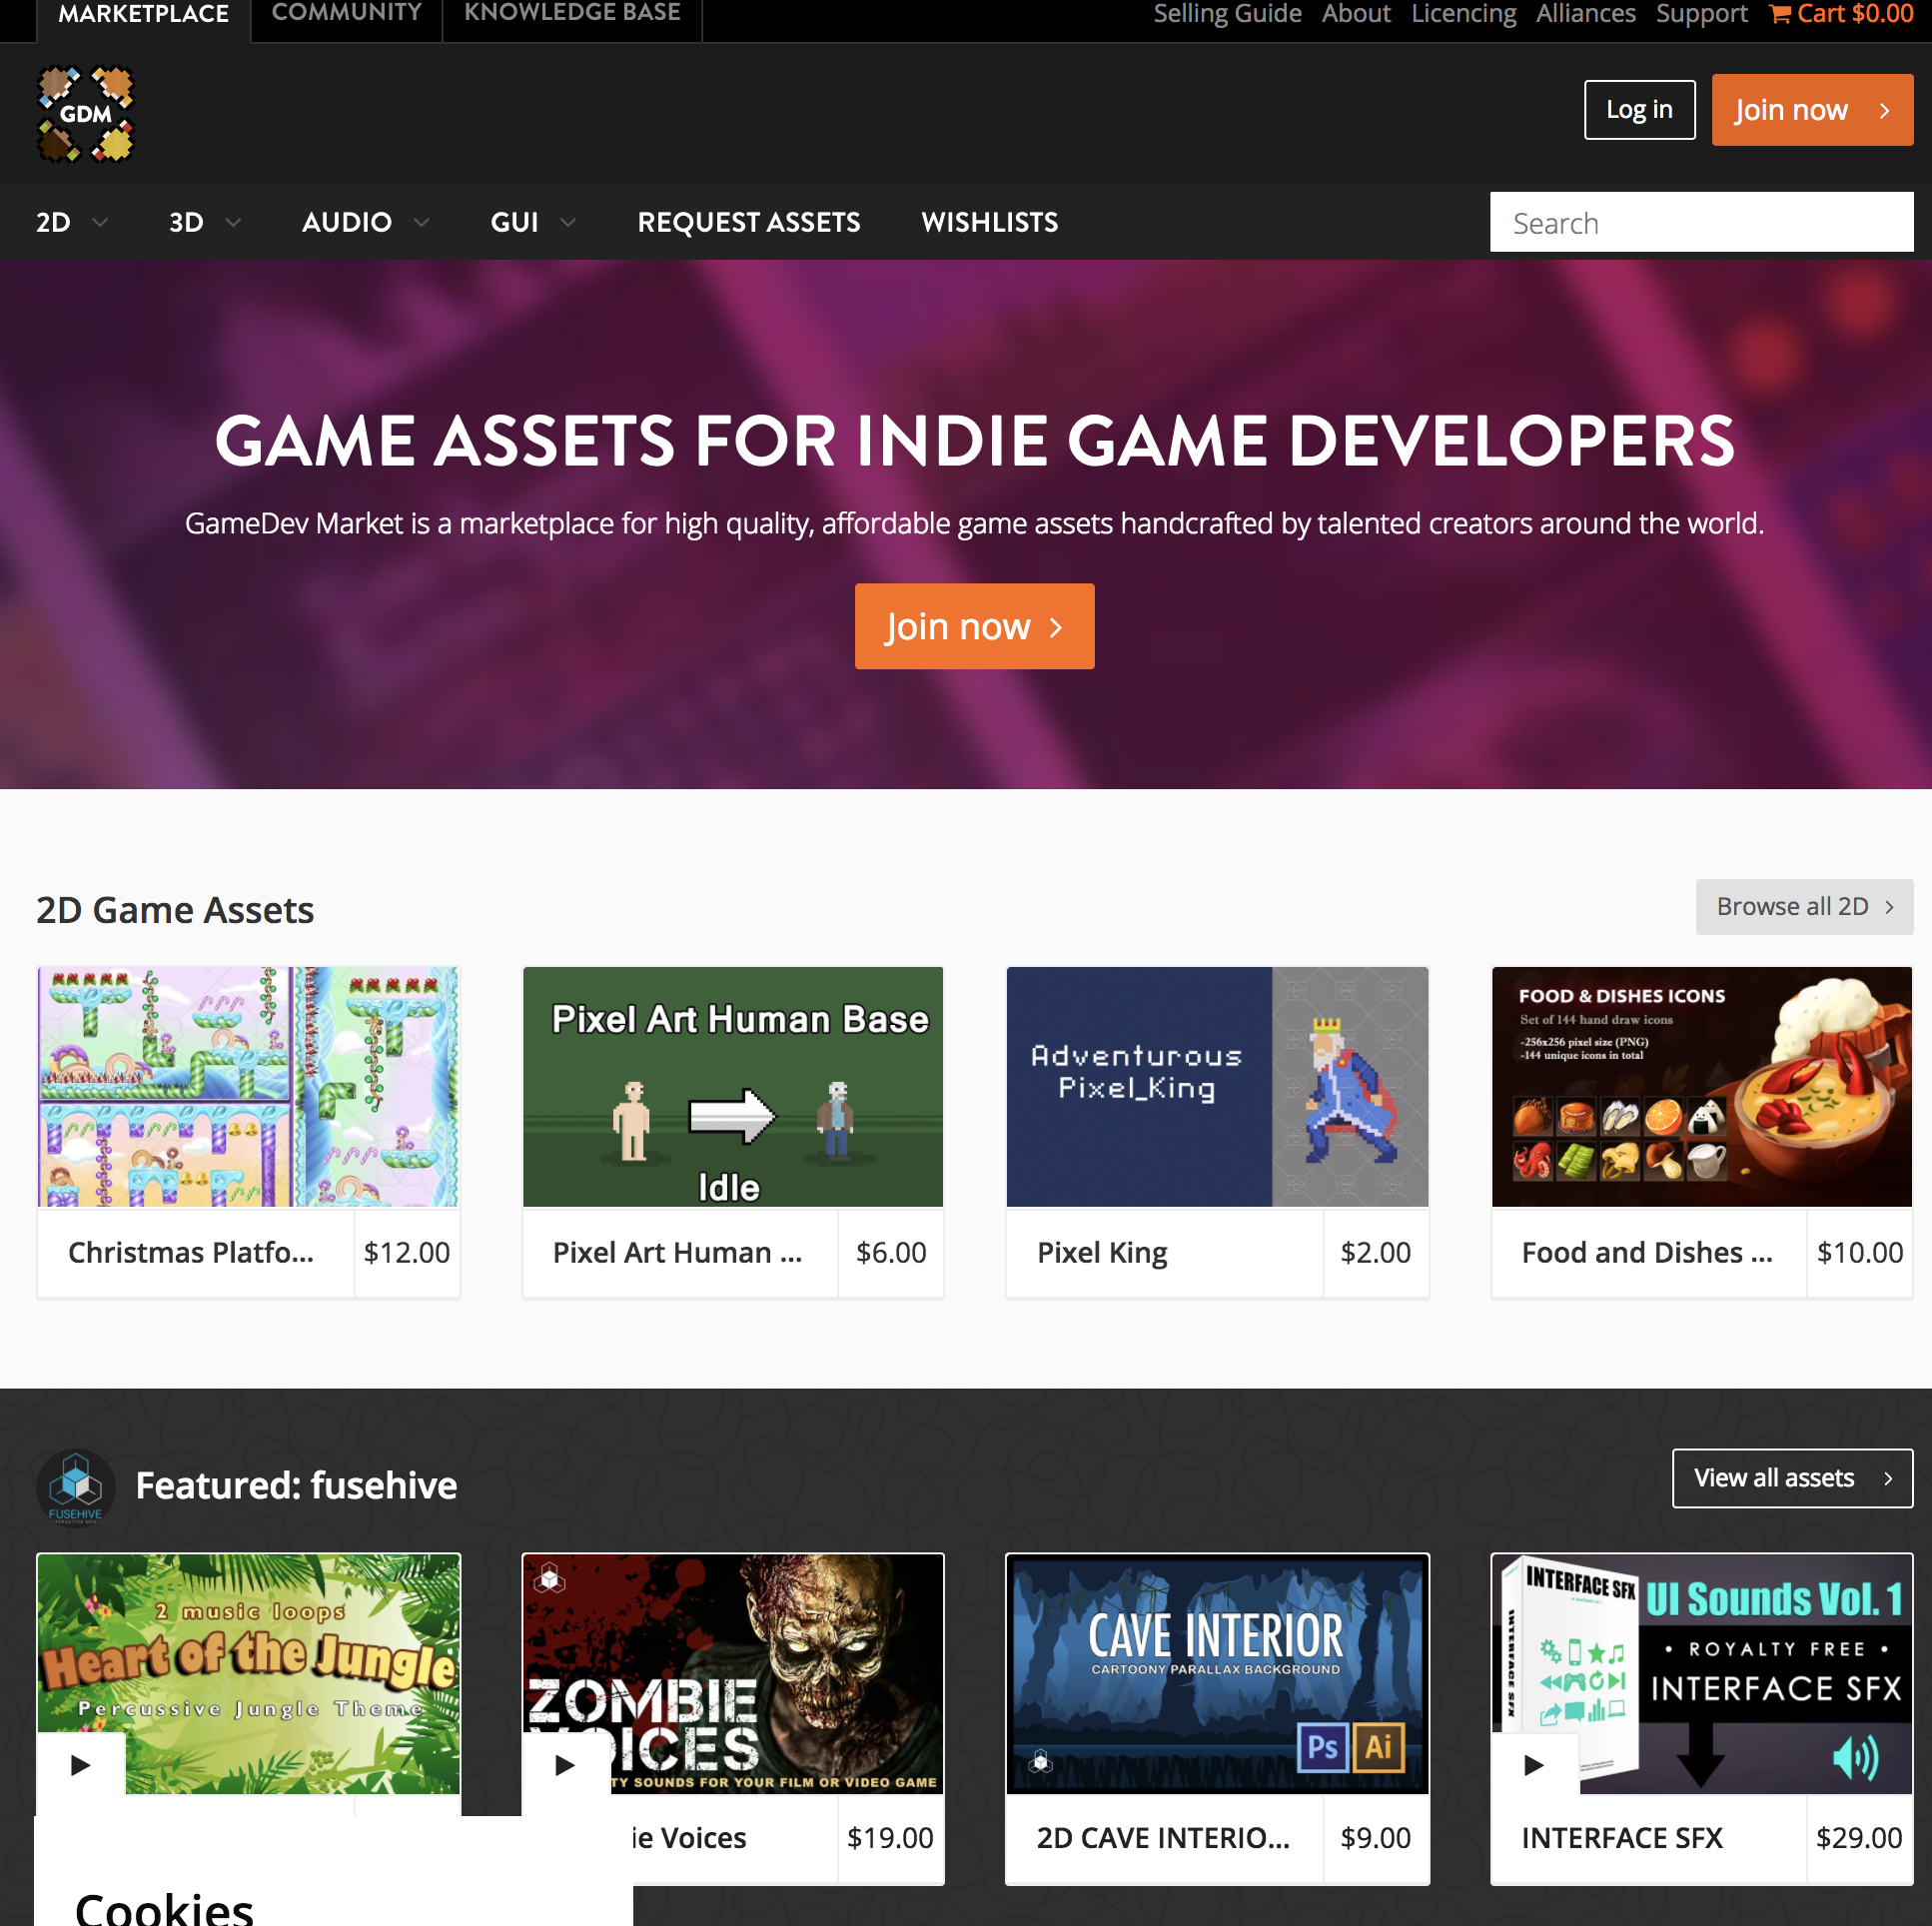 gamedevmarket.net